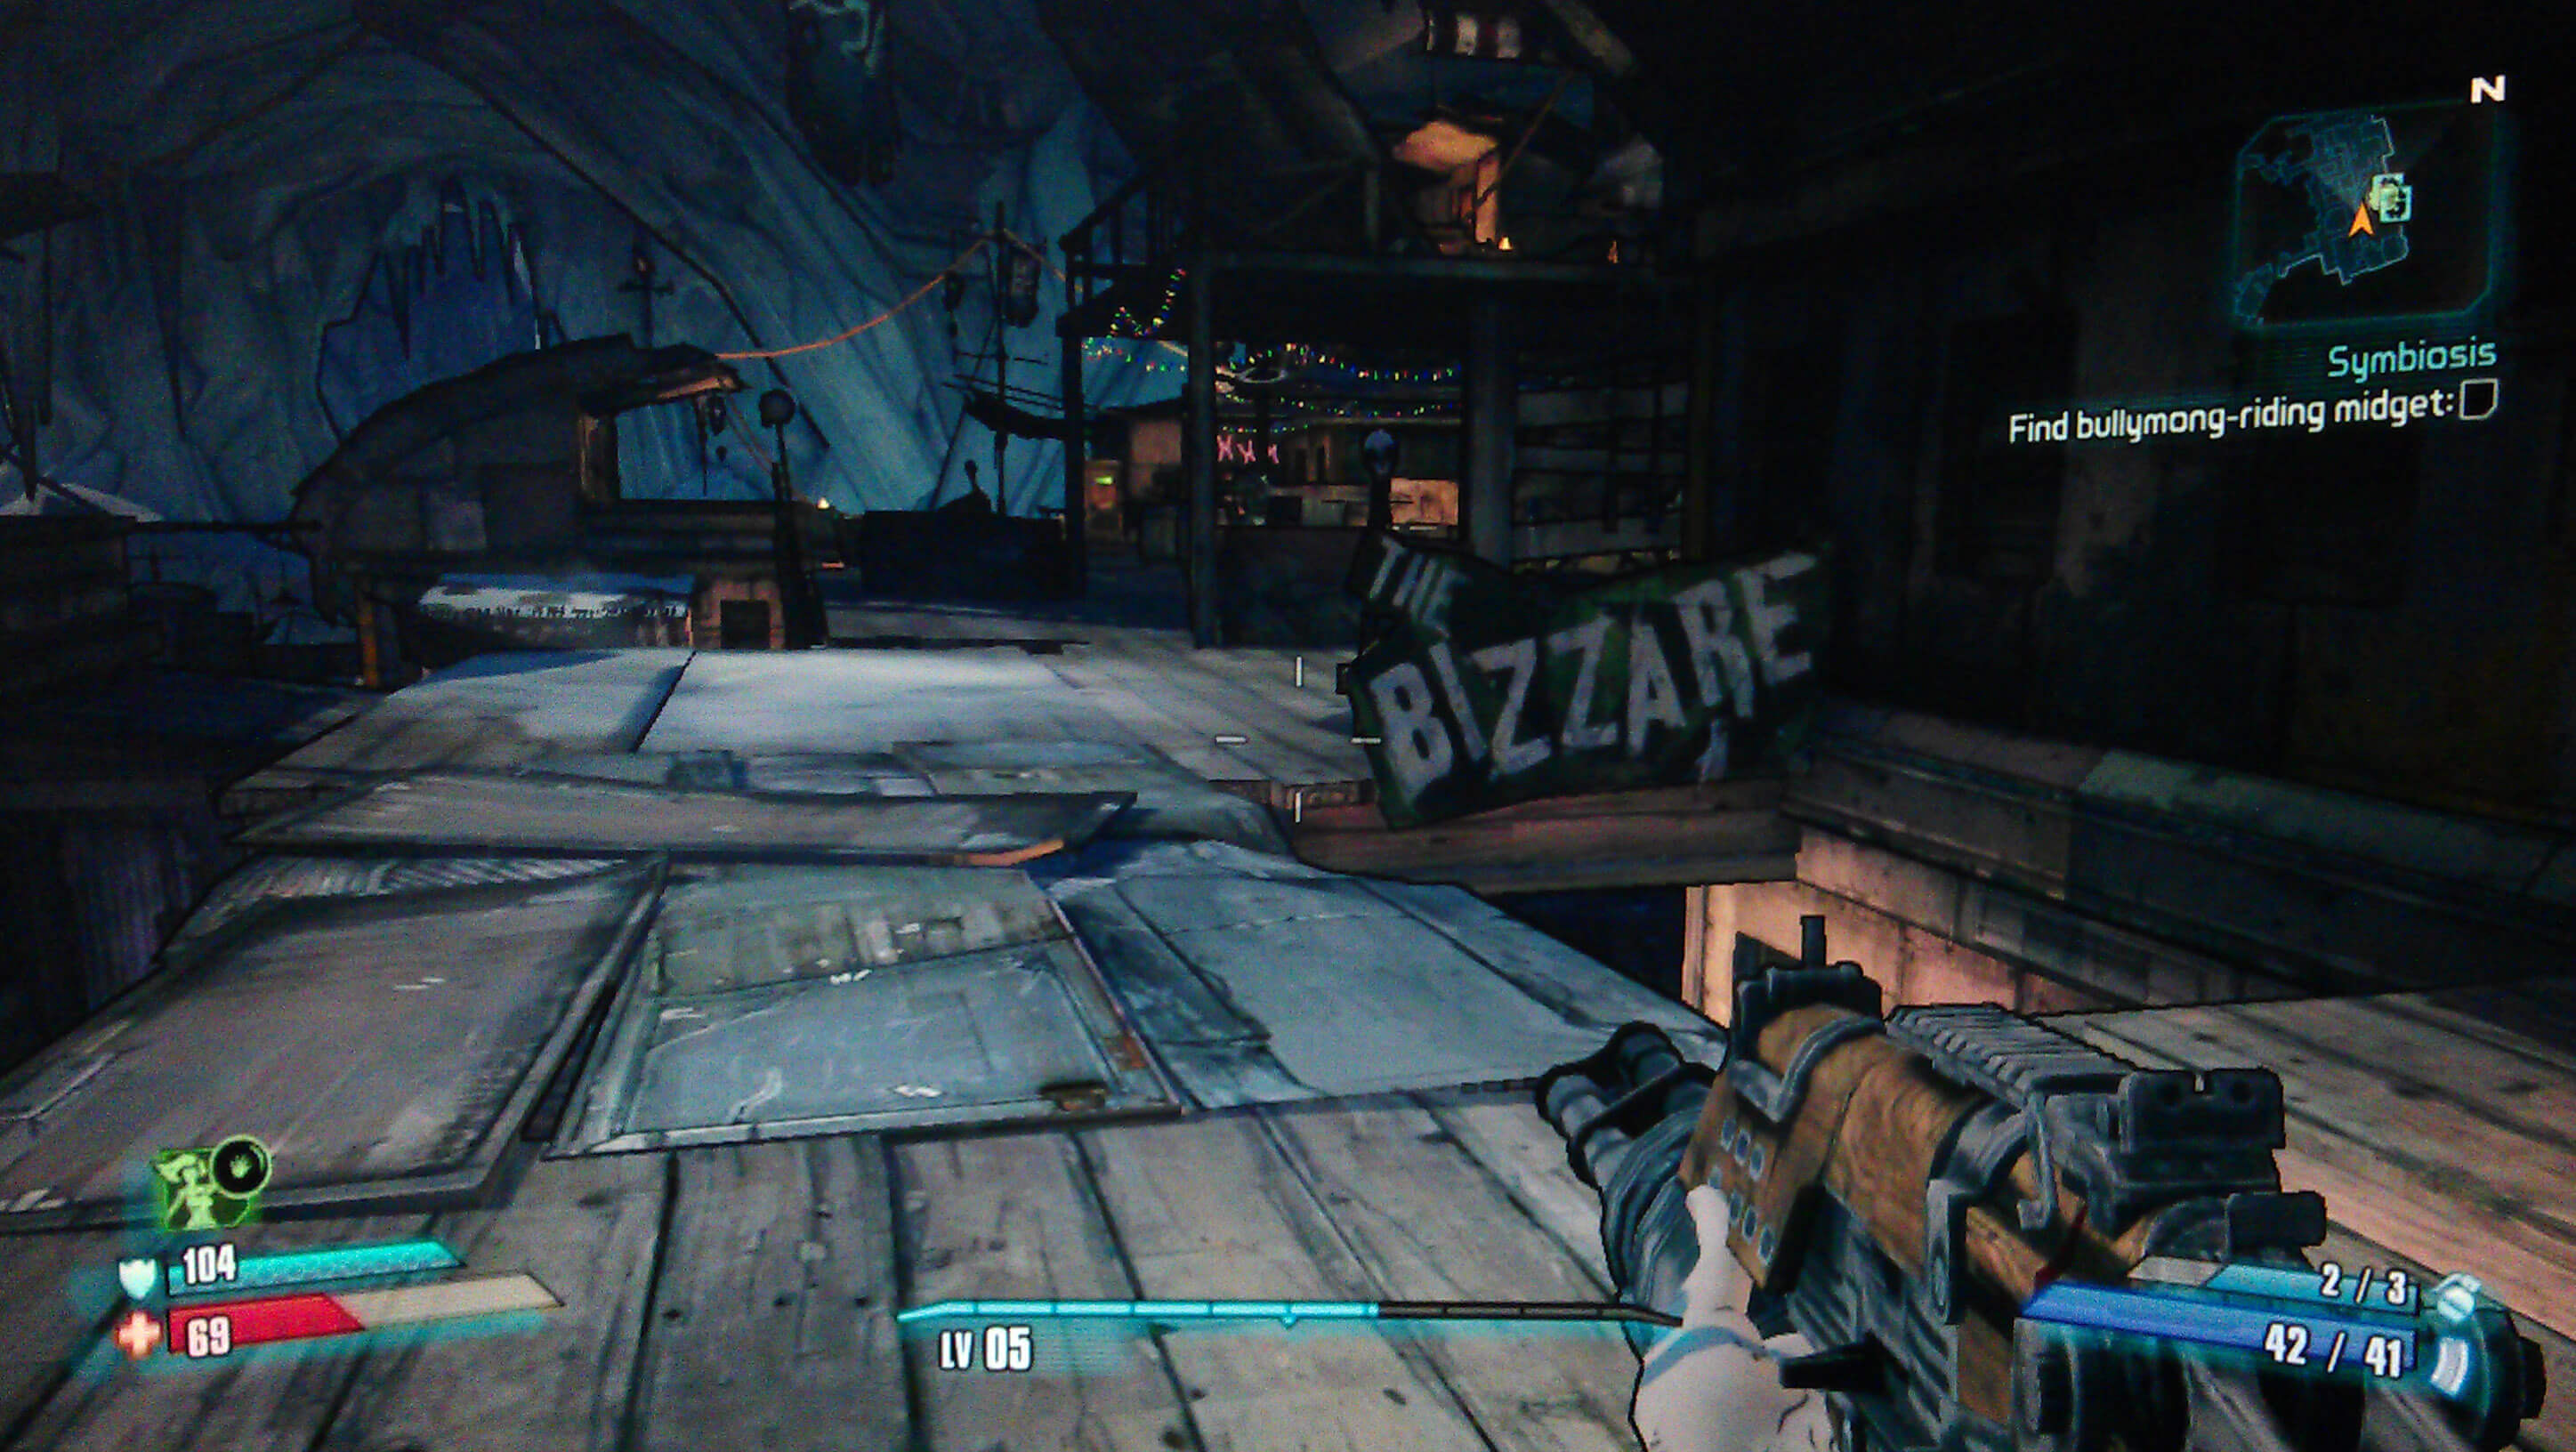 Borderlands 2 Symbiosis Walkthrough